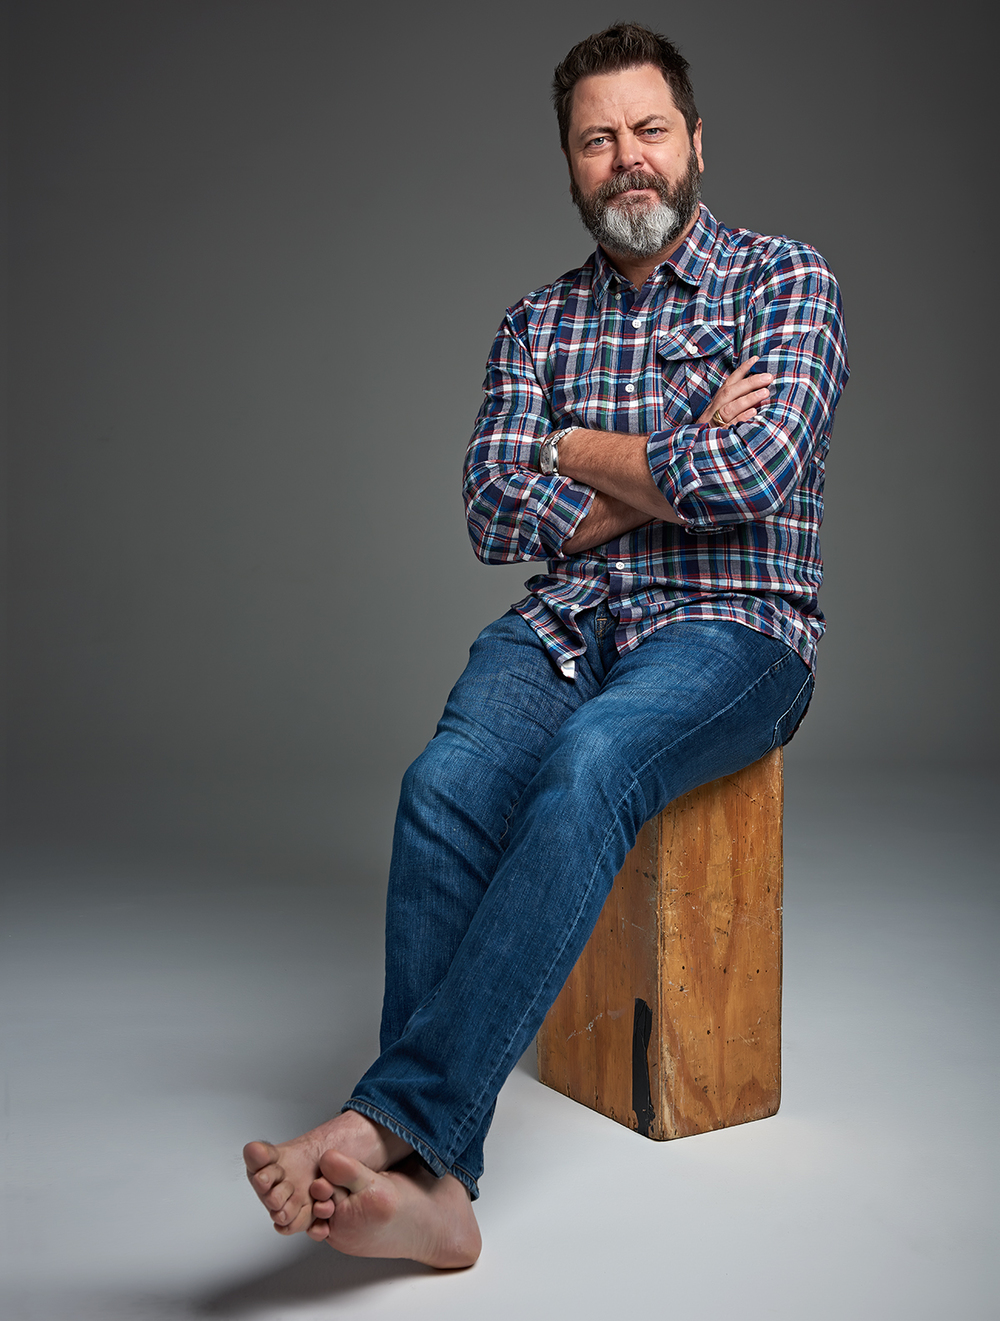 Hrz_NickOfferman8744v2.jpg